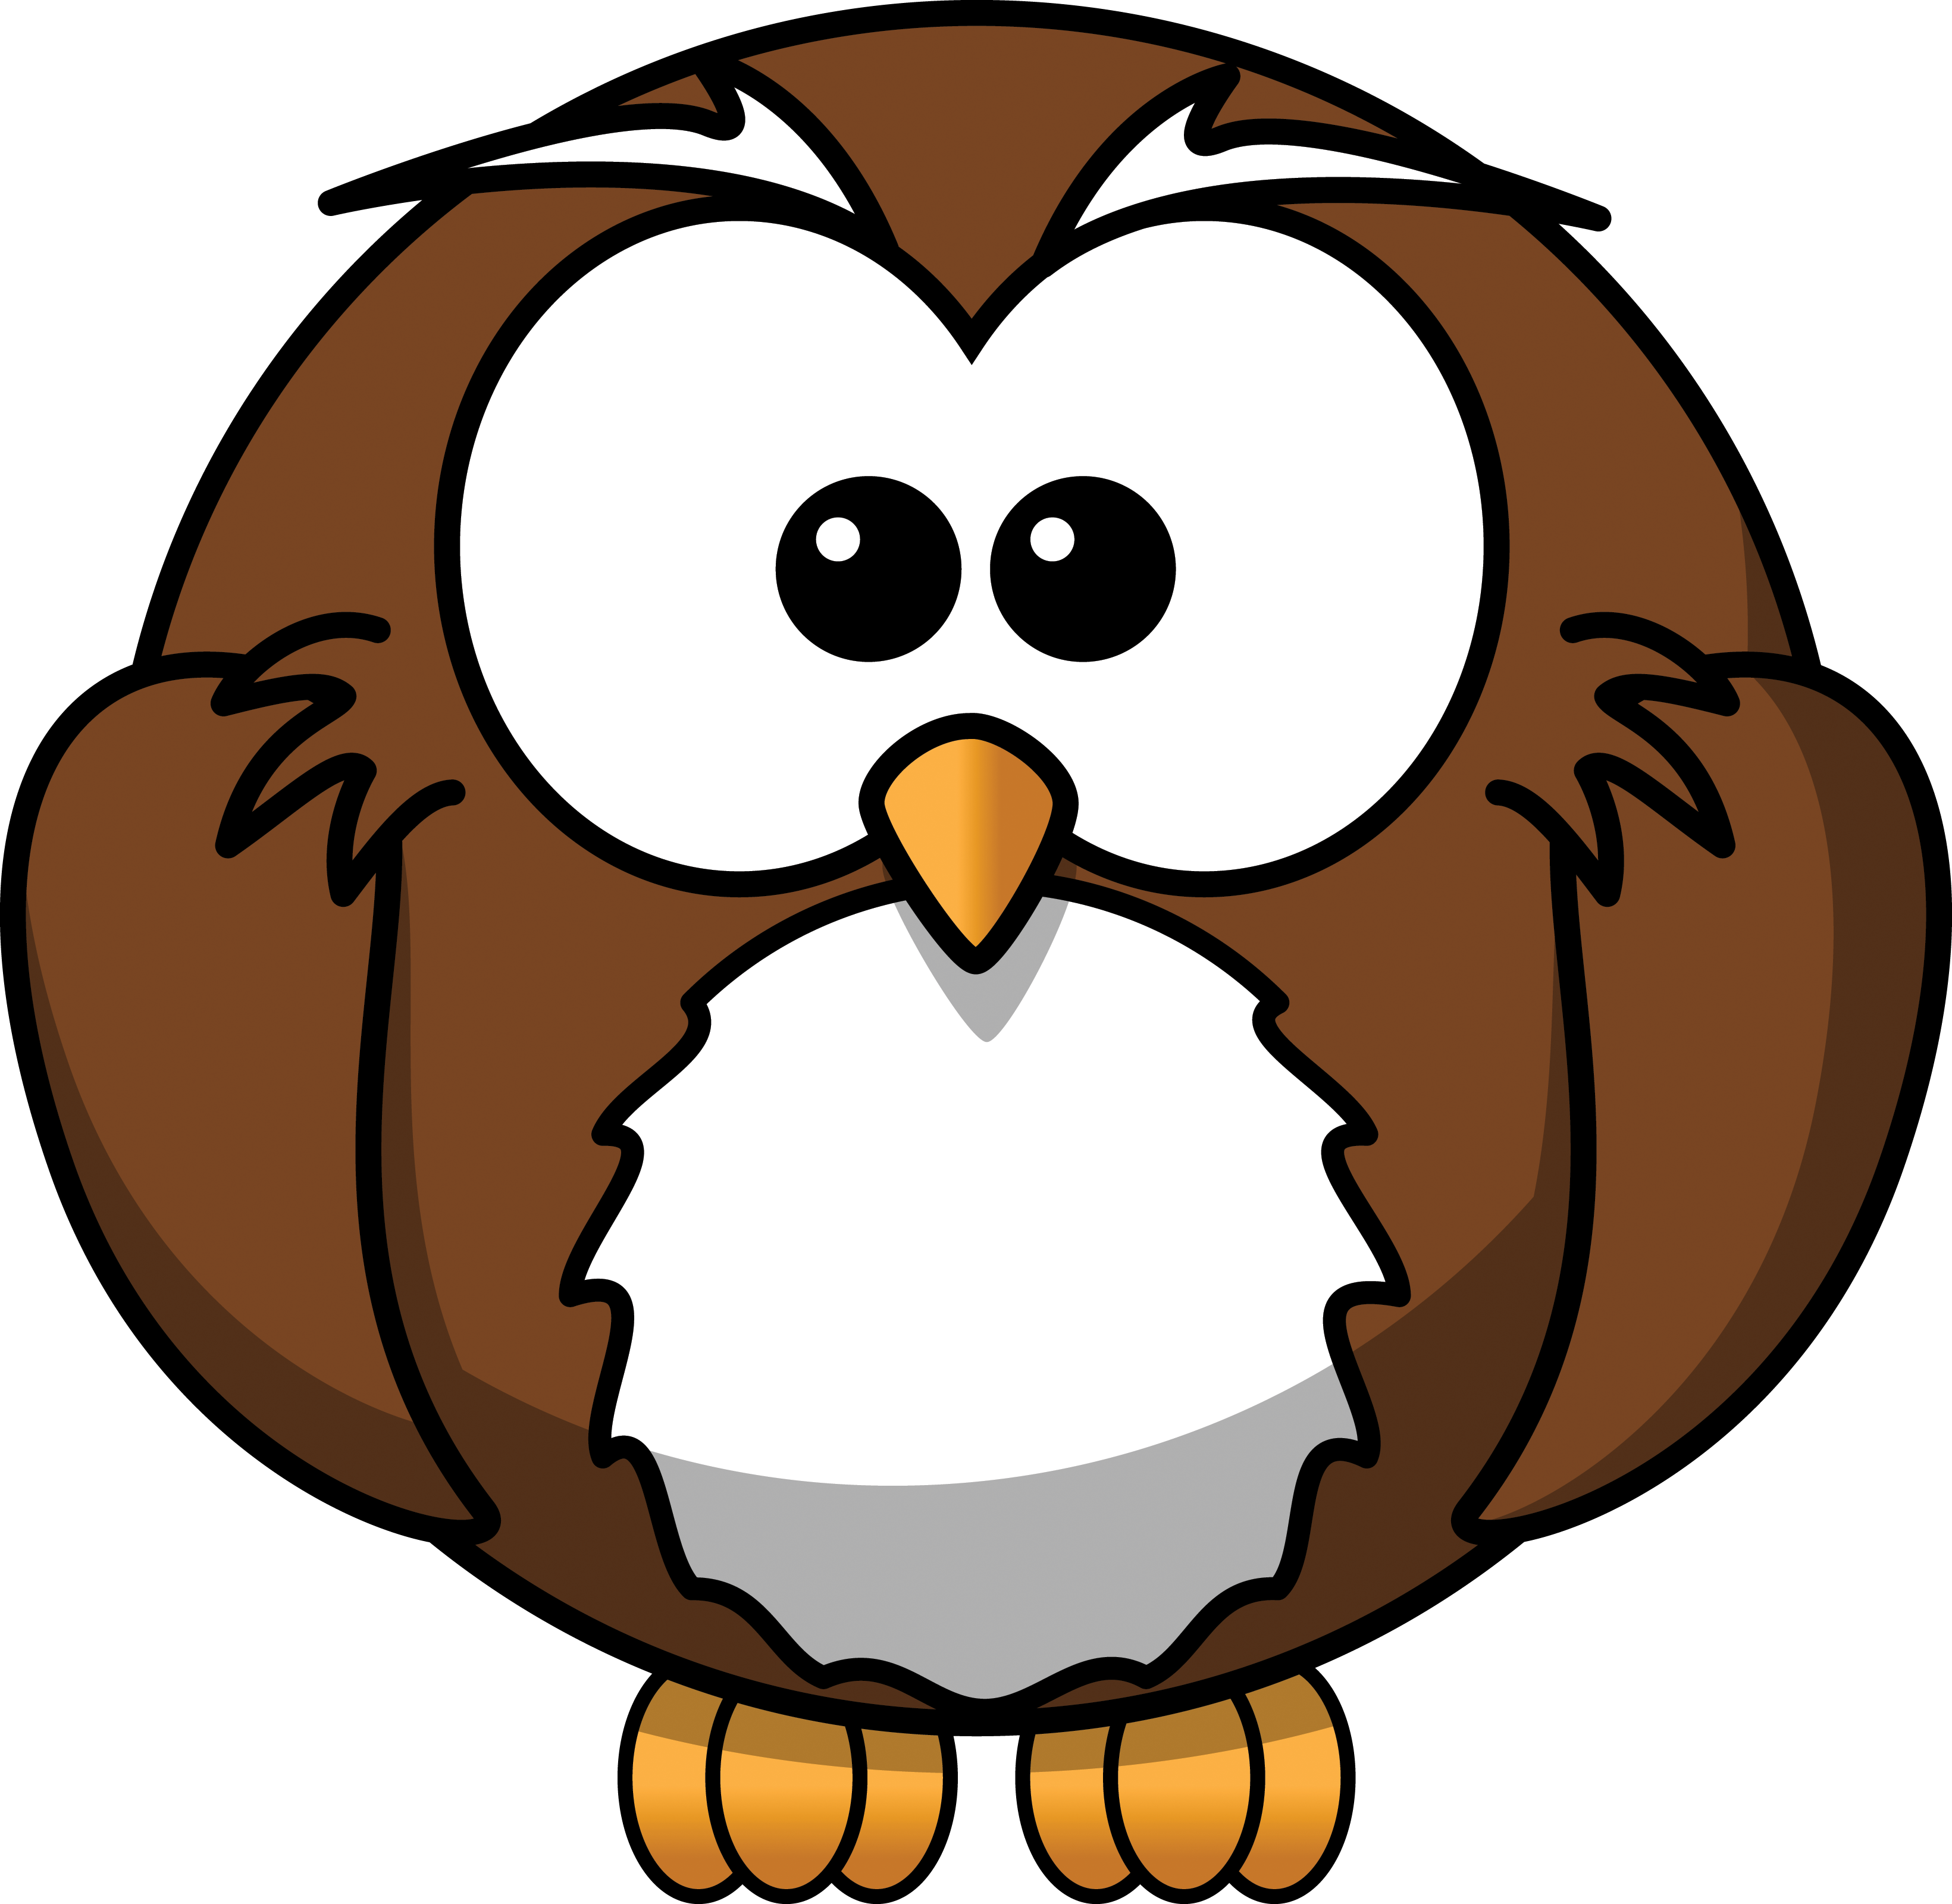 Cartoon Owl Clip Art | Halloween Wallpapers 2014